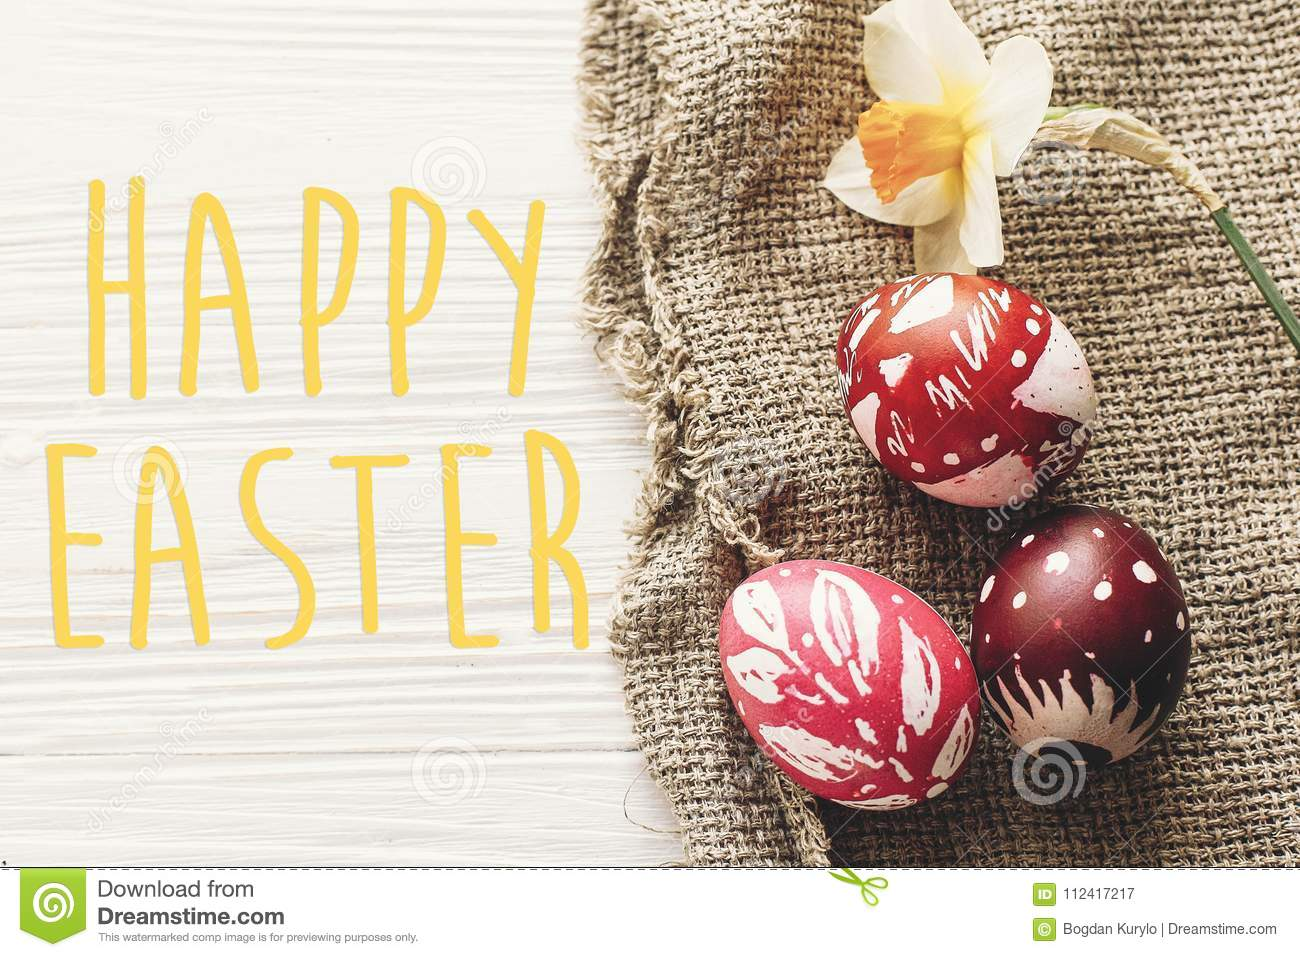 Happy Easter Text Seasons Greetings Card Stylish Painted Egg